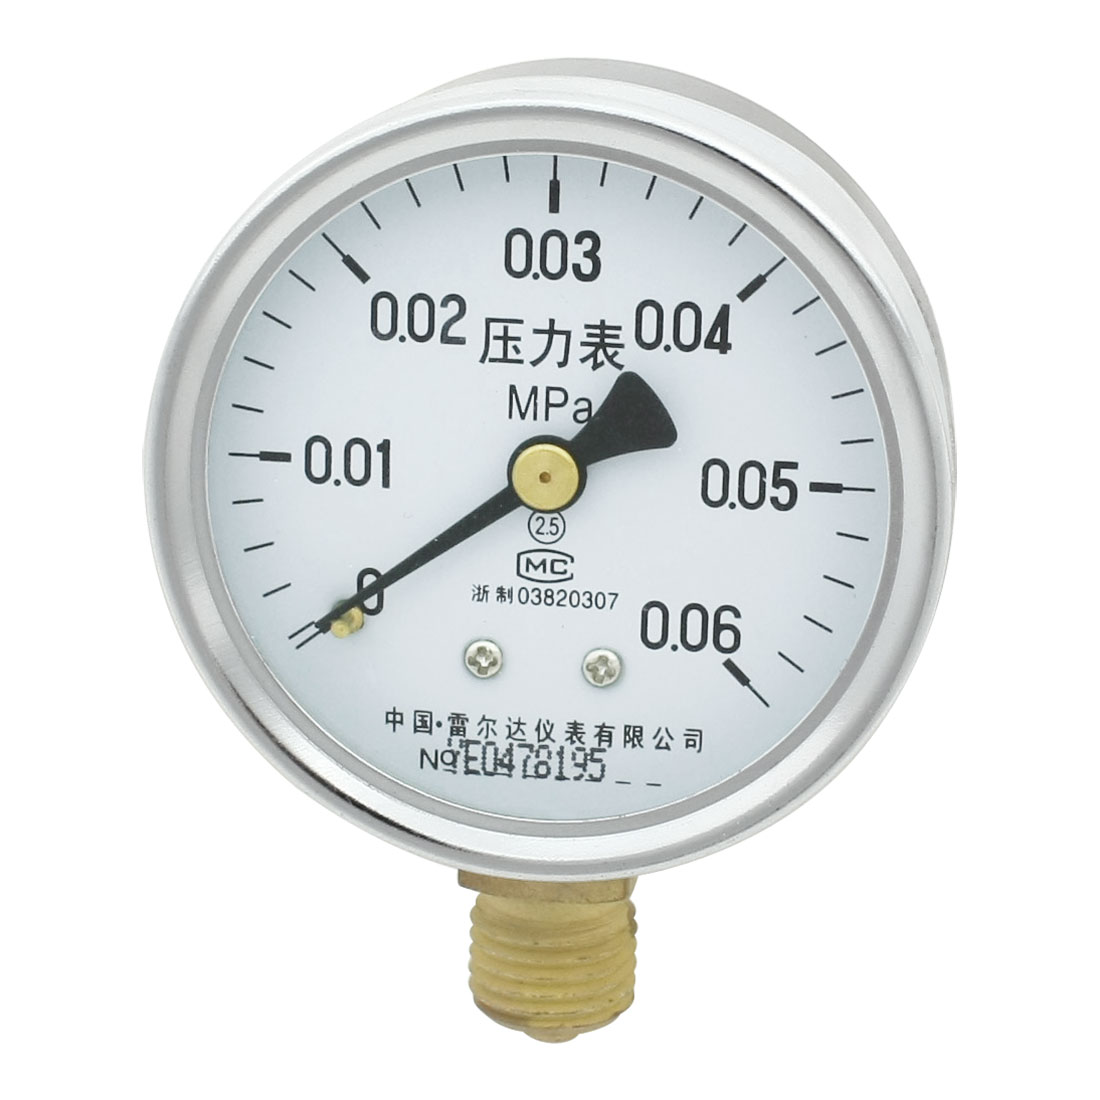 Lower Mount M14 Thread 0.06Mpa 8.7PSI Industrial Air Pressure Gauge